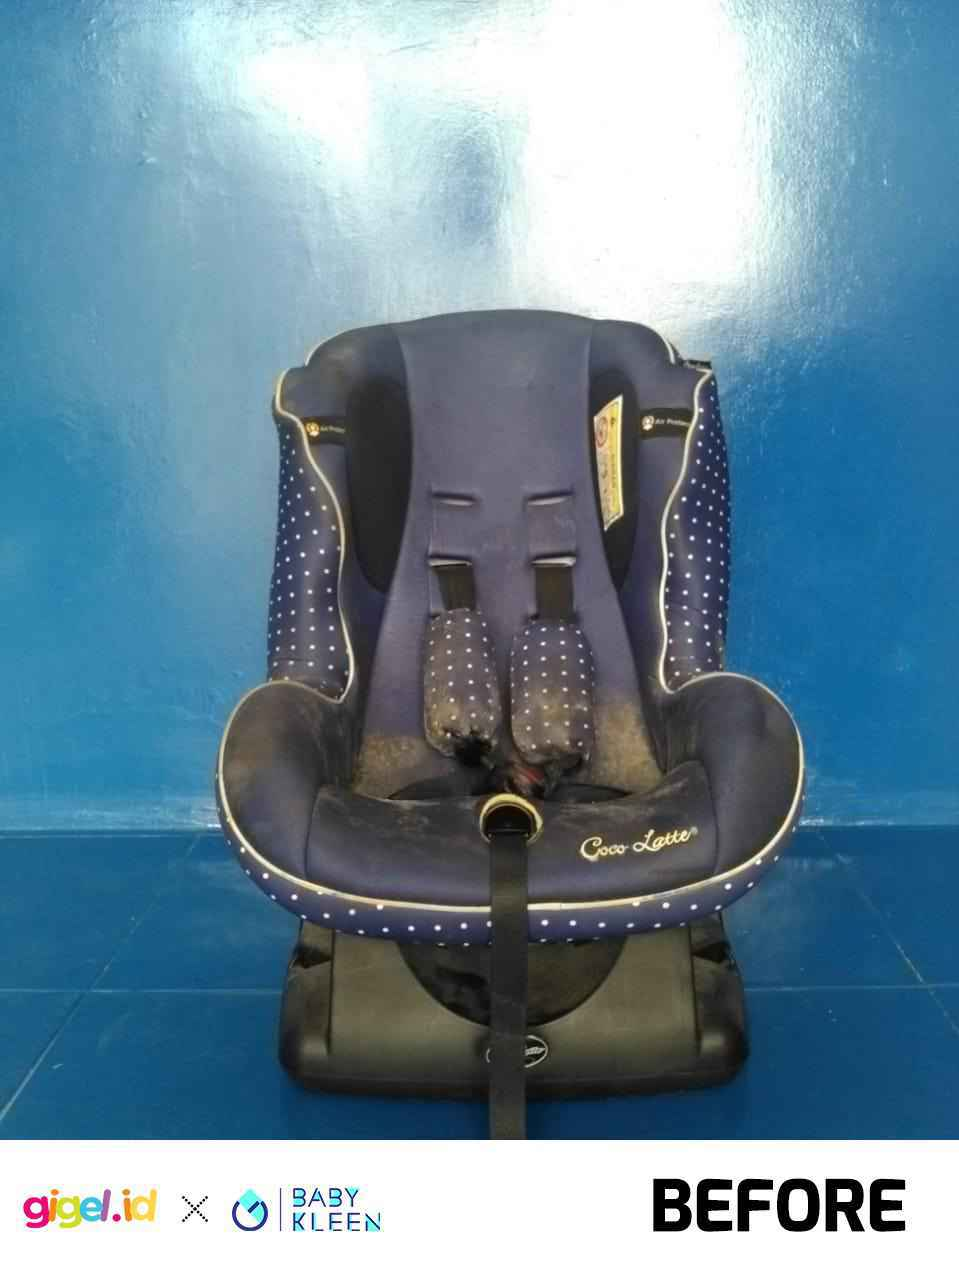 GIGEL.ID x Baby Kleen Laundry Car Seat - 4